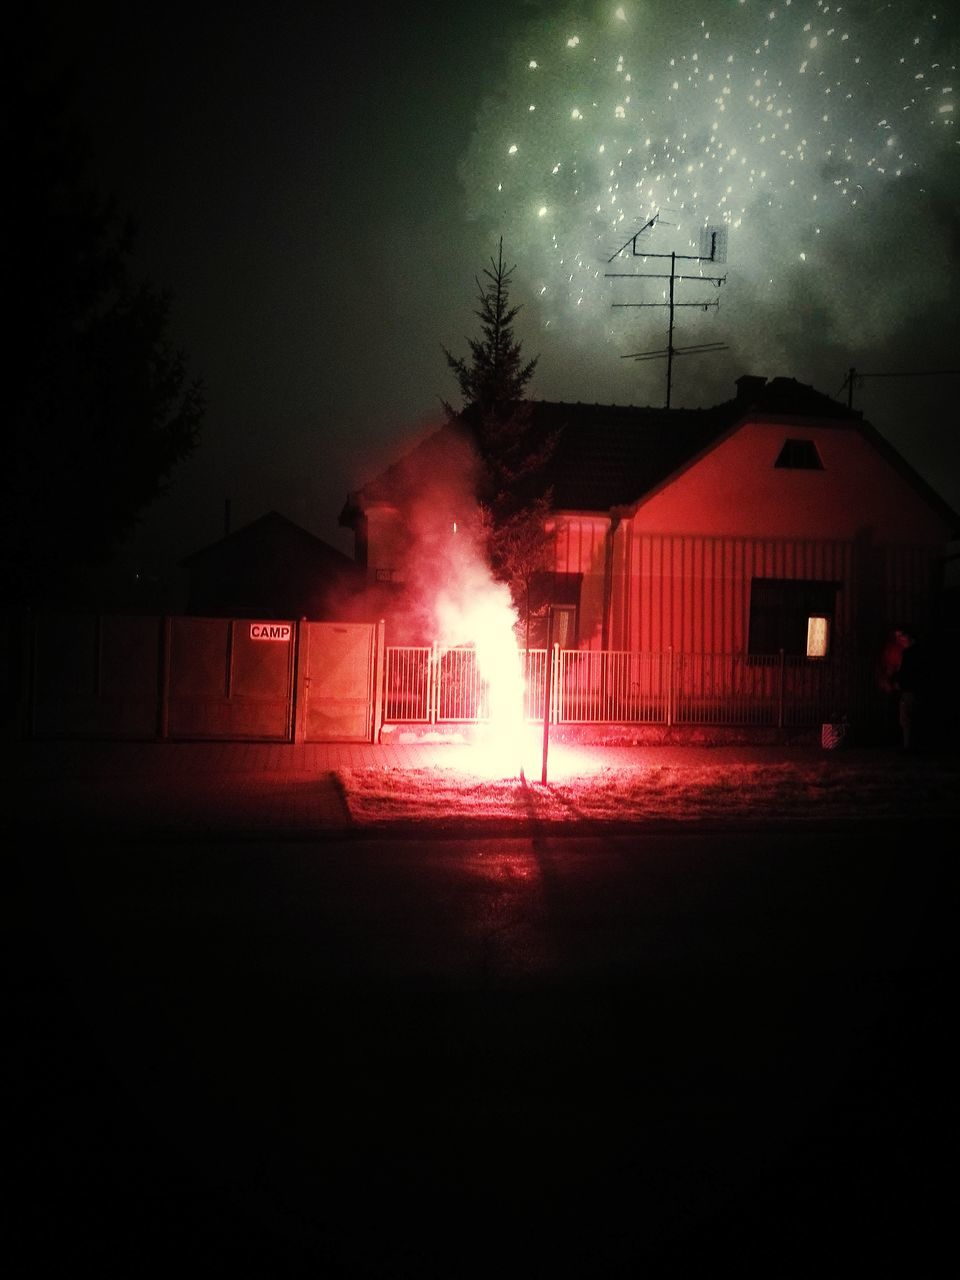 night, illuminated, built structure, building exterior, architecture, house, danger, sky, no people, burning, flame, outdoors, tree, nature